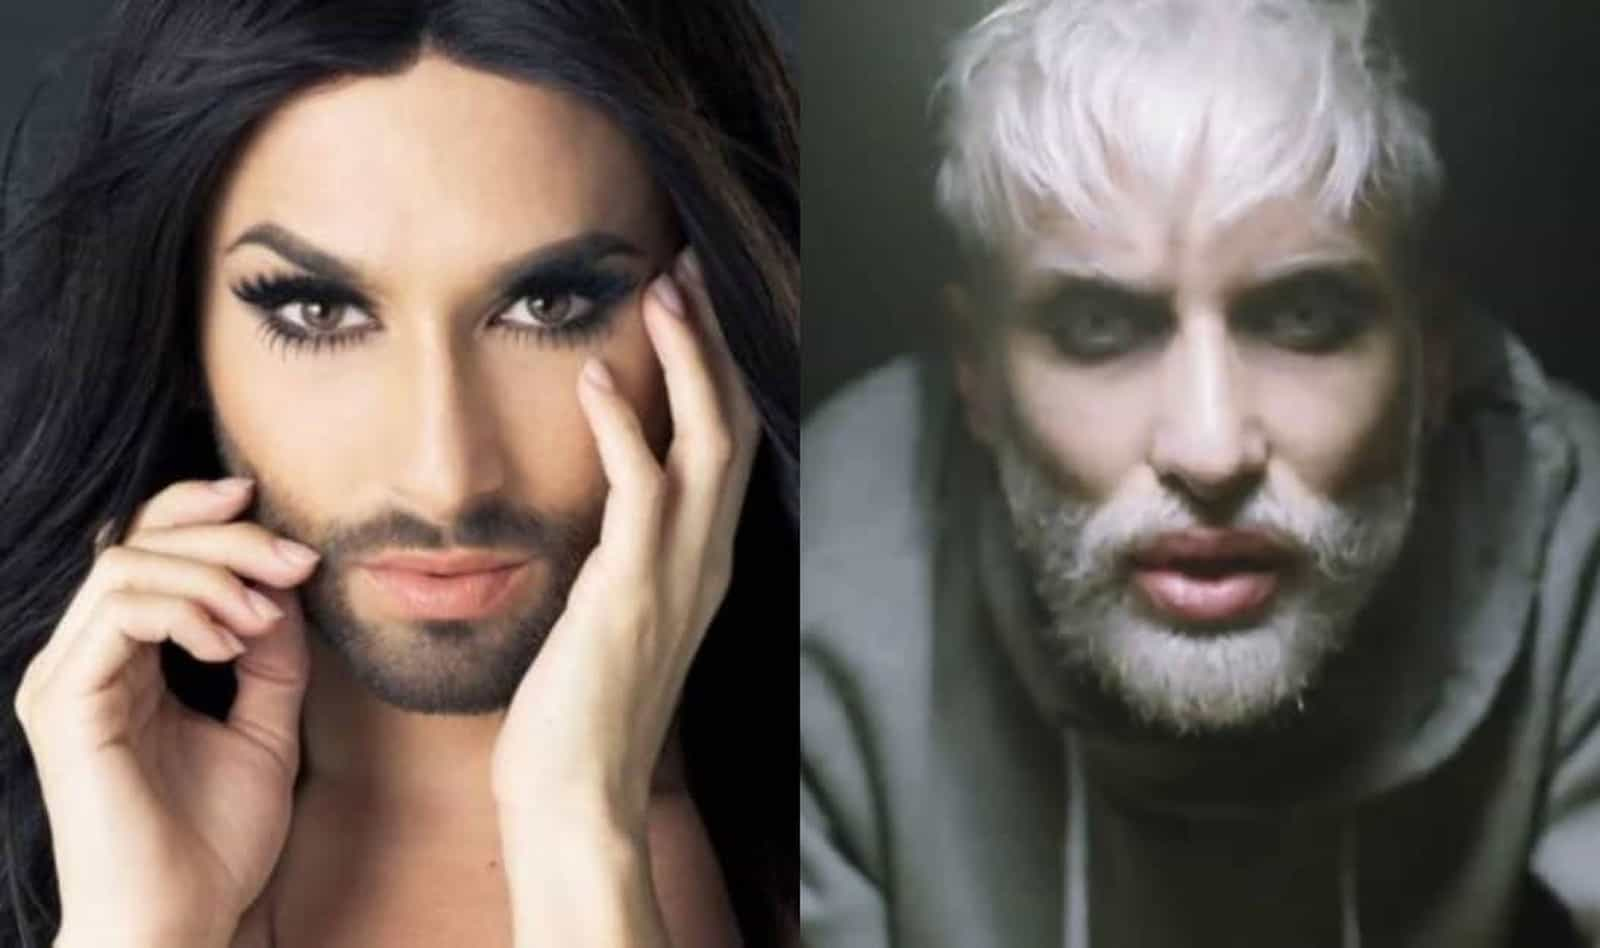 Conchita Wurst, cantora drag queen de barba, surpreende com novo visual